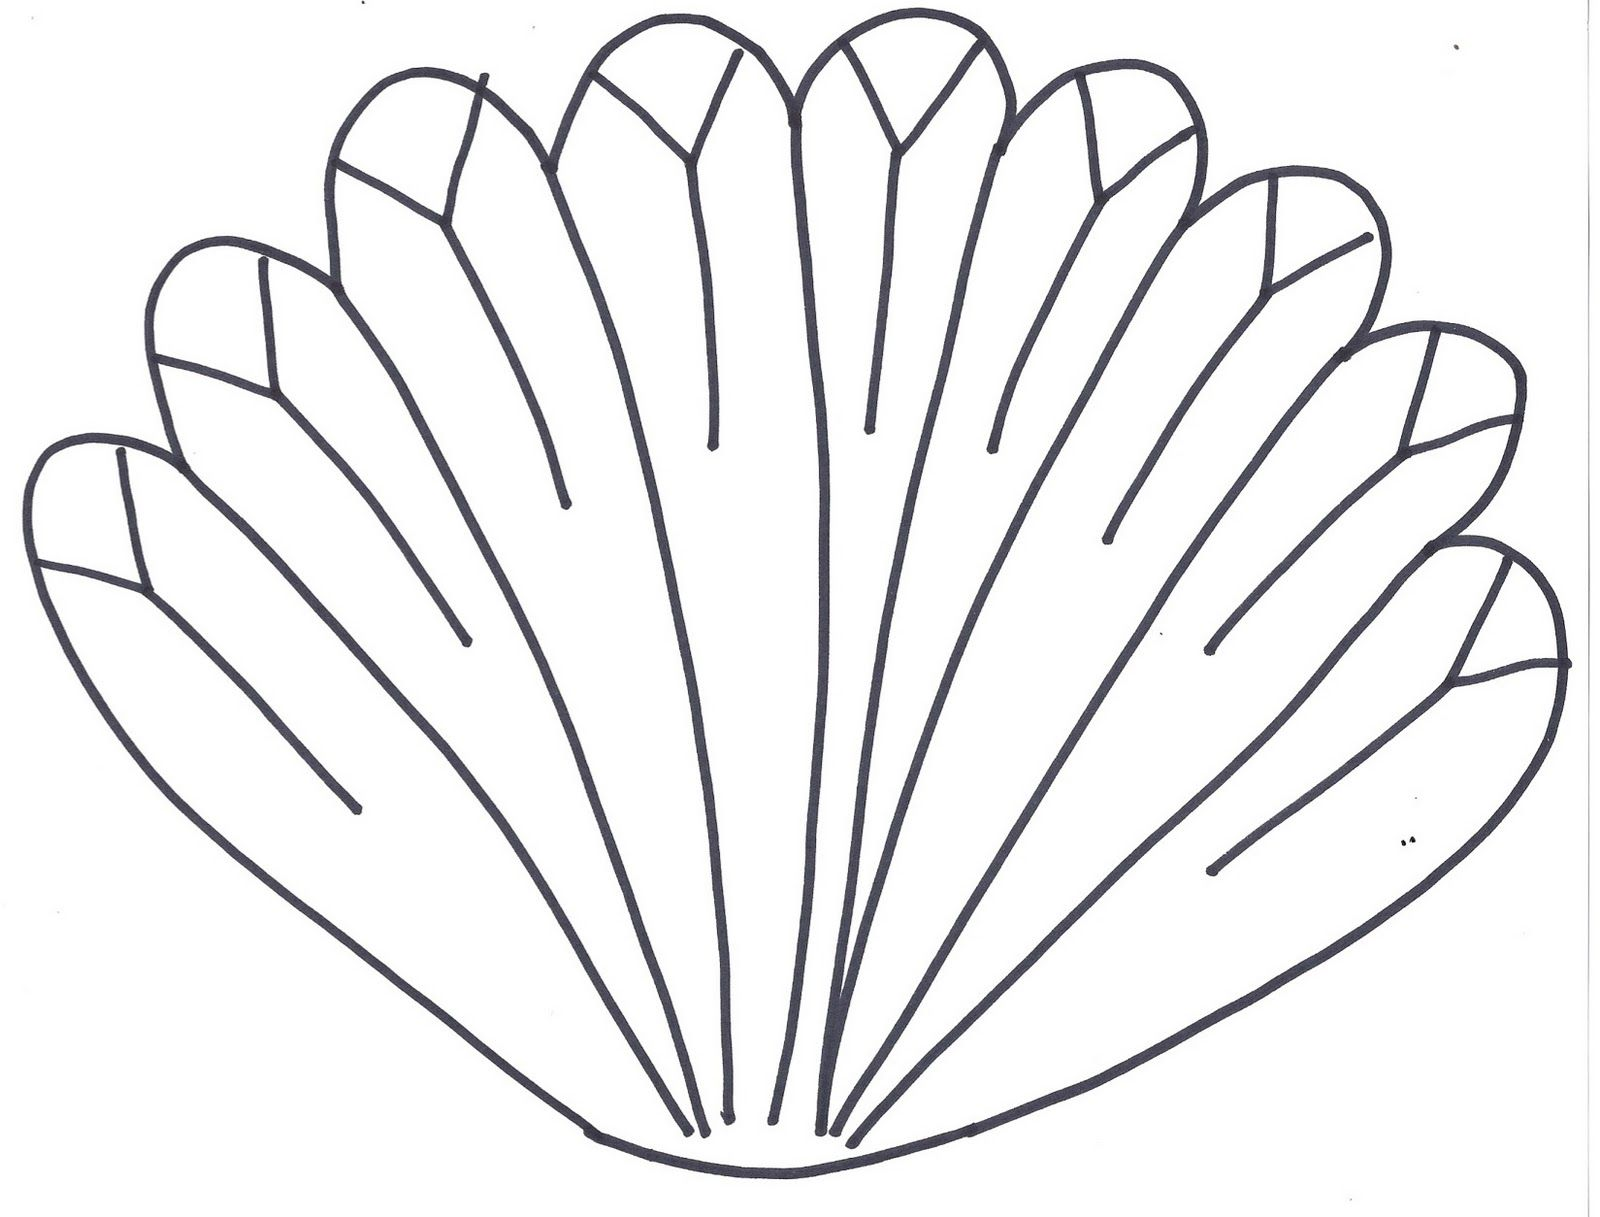 Uncategorized Turkey Feathers Coloring Pages primarily singing a rafter of turkeys hair pinterest turkey feather coloring page